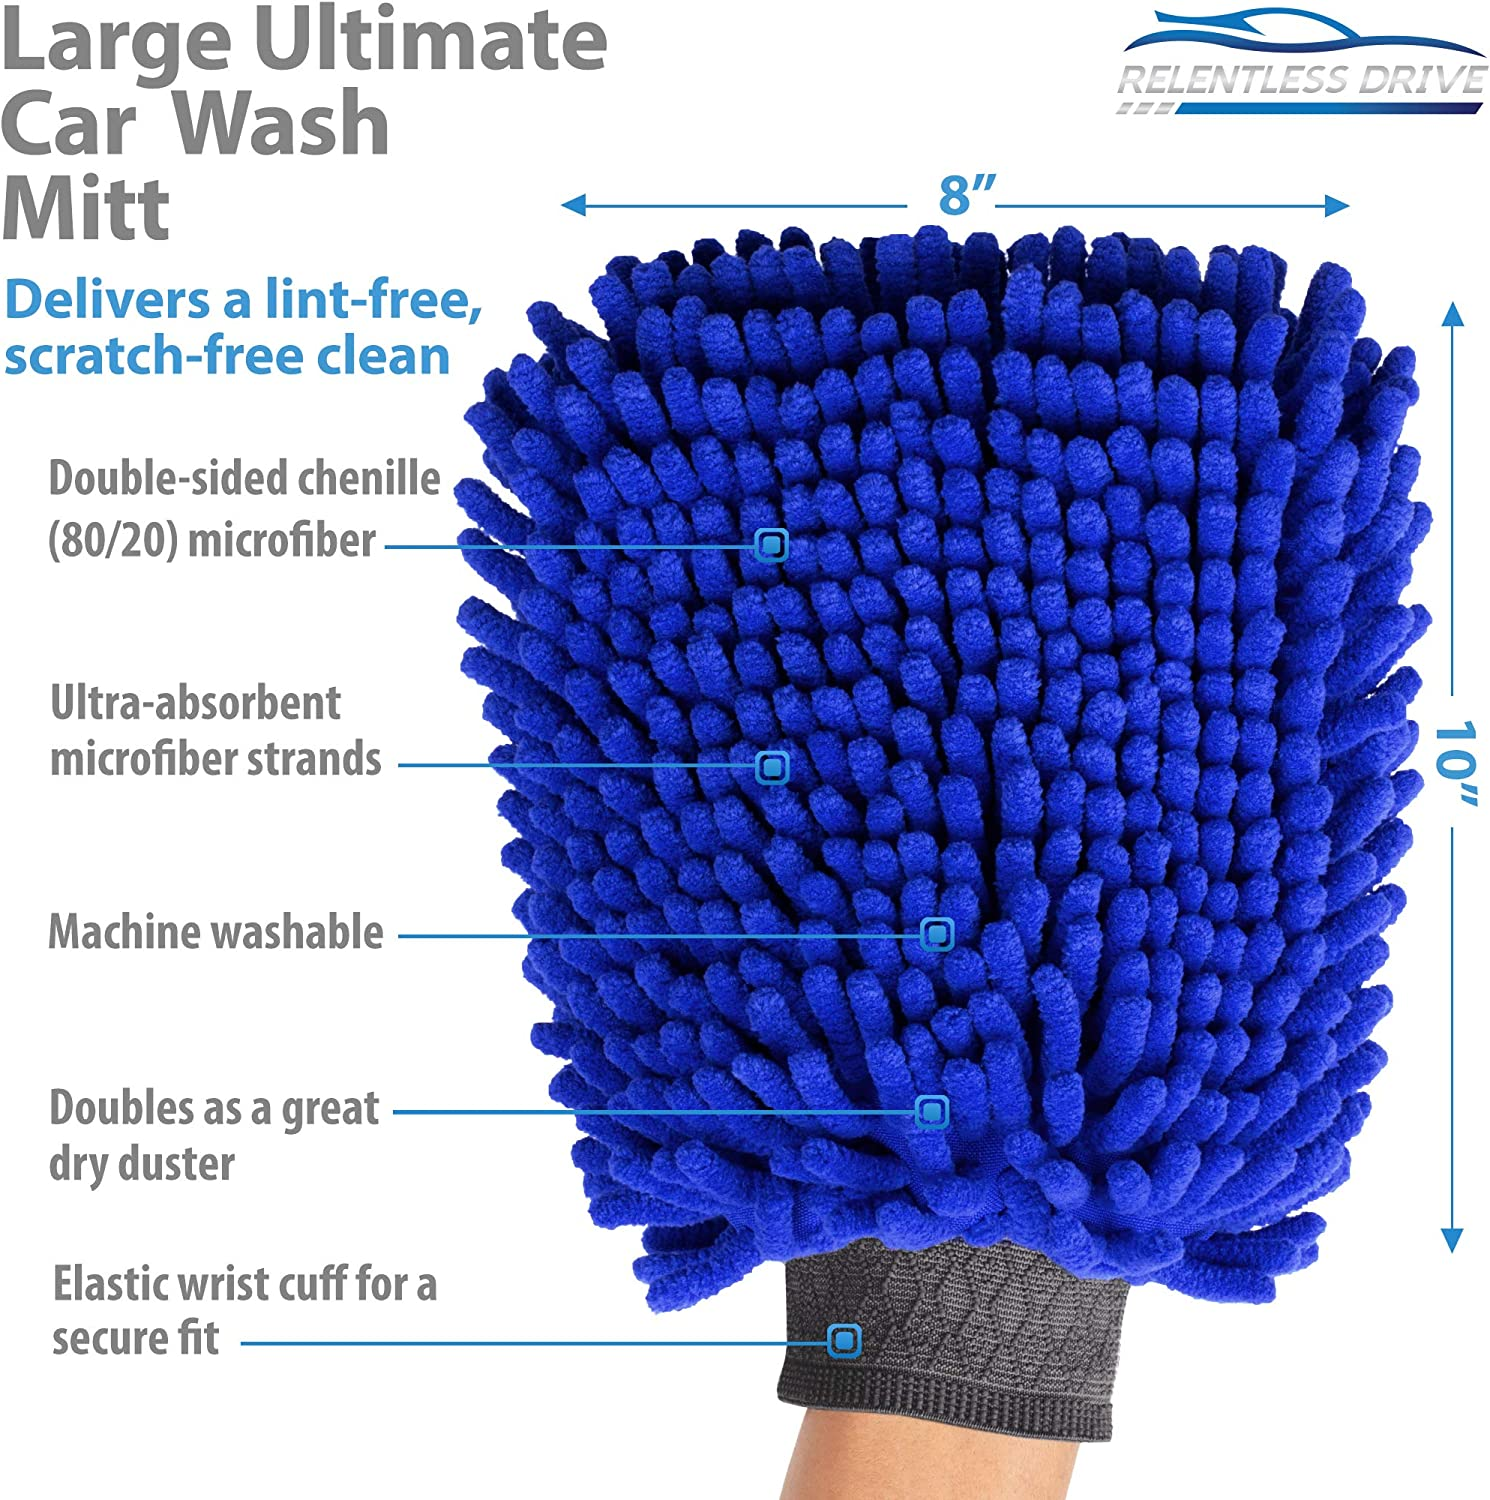 4 in 1 ZaCoo 2-Pack Car Wash Mitt Double Sided +2 Side mesh Premium Chenille Microfiber Wash Mitts for Car Cleaning Scratch-Free No Falling Wool